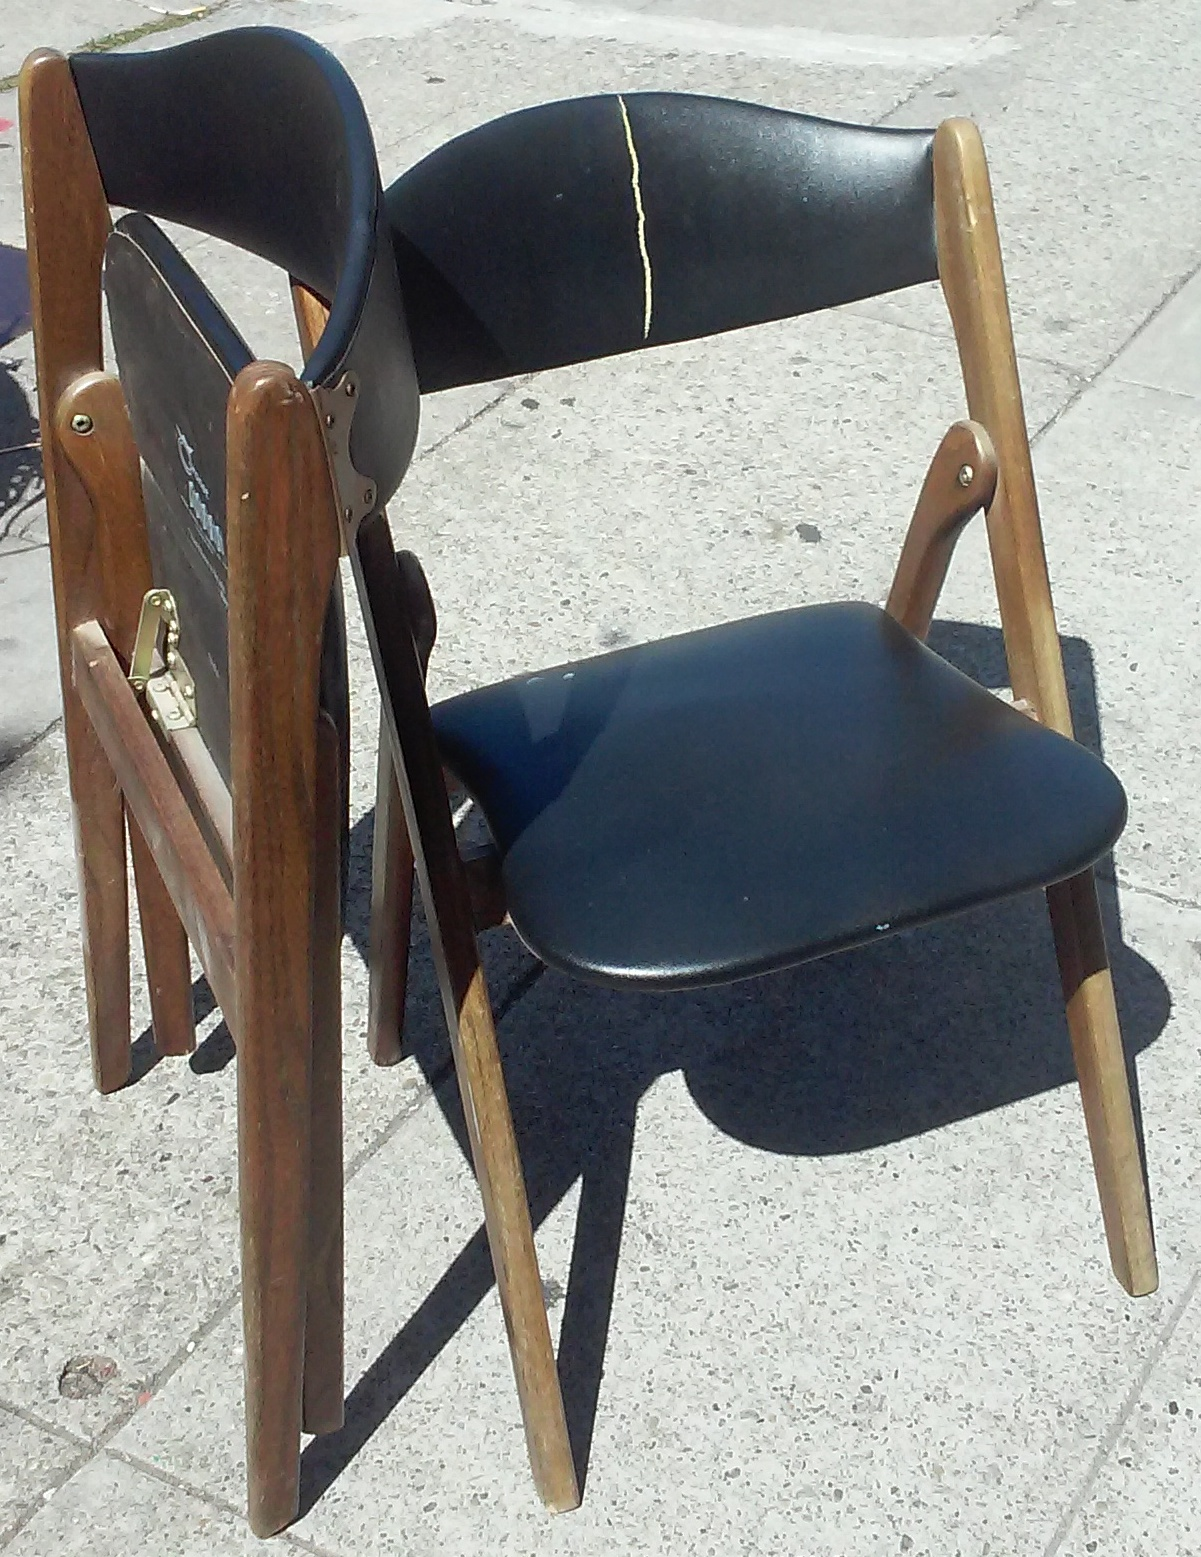 coronet folding chairs polyester chair sashes wholesale uhuru furniture and collectibles sold 5864